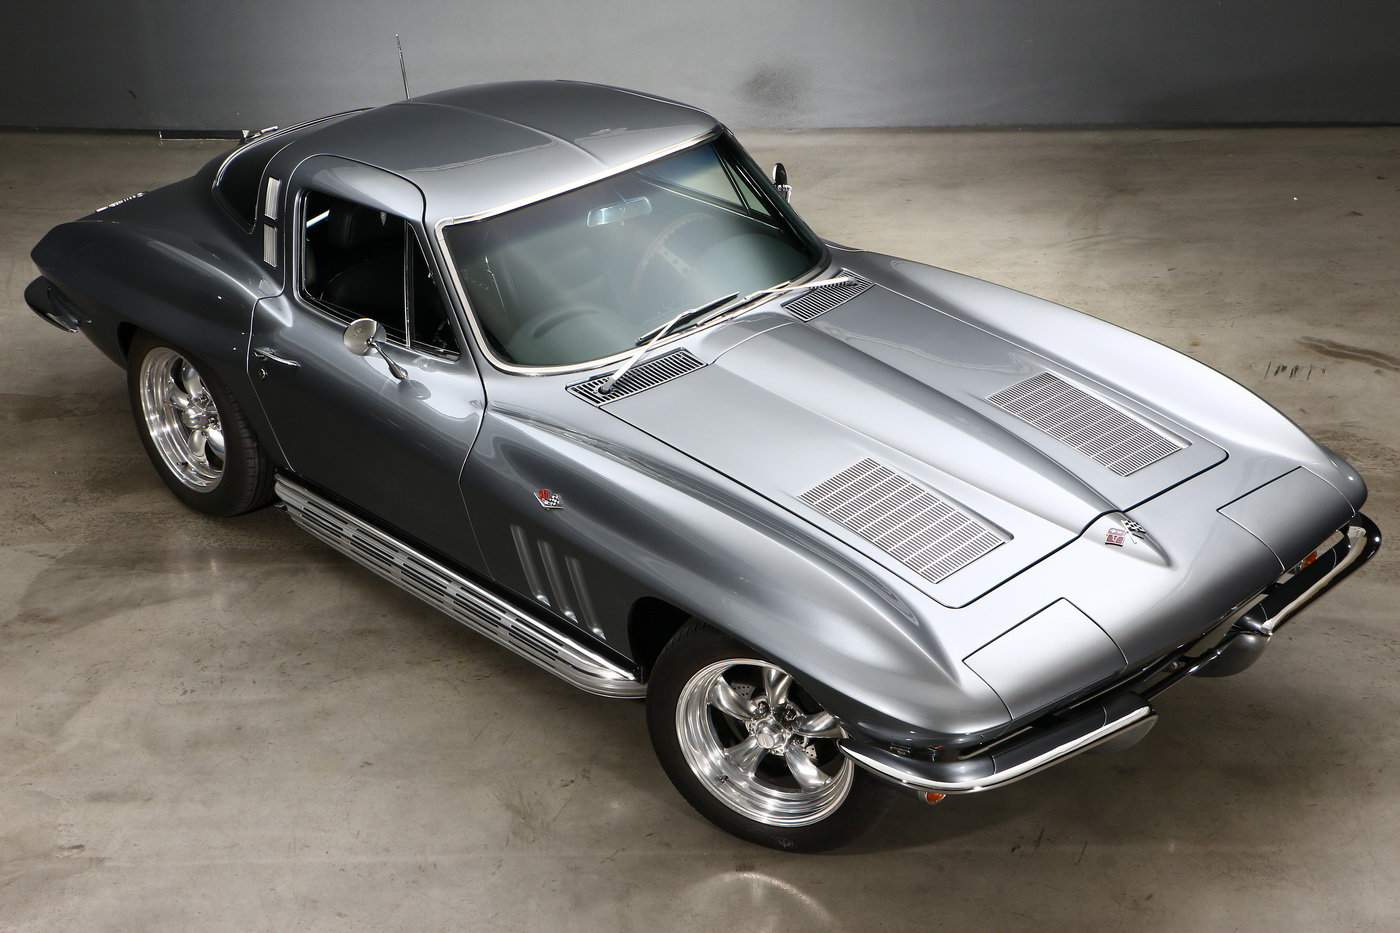 1966 Chevroltet Corvette Sting Ray C2 Coupé For Sale (picture 2 of 6)